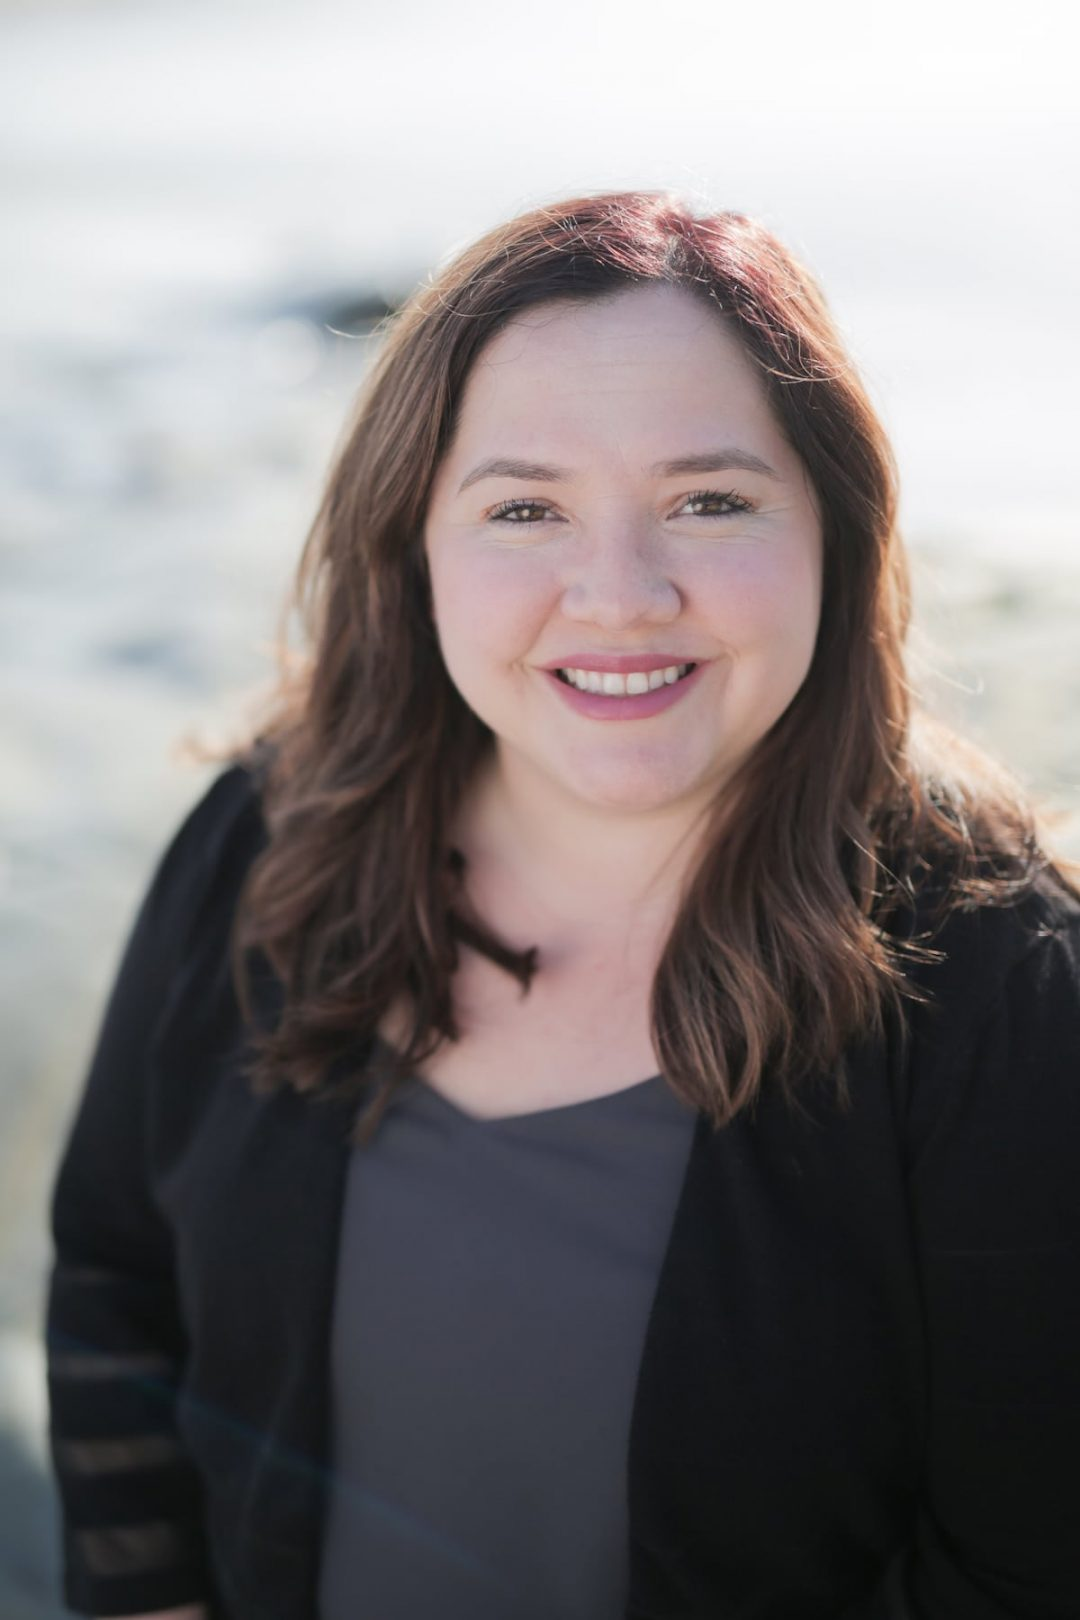 Introducing our Inaugural Director of Institutional Partnerships: Brittany Dávila!